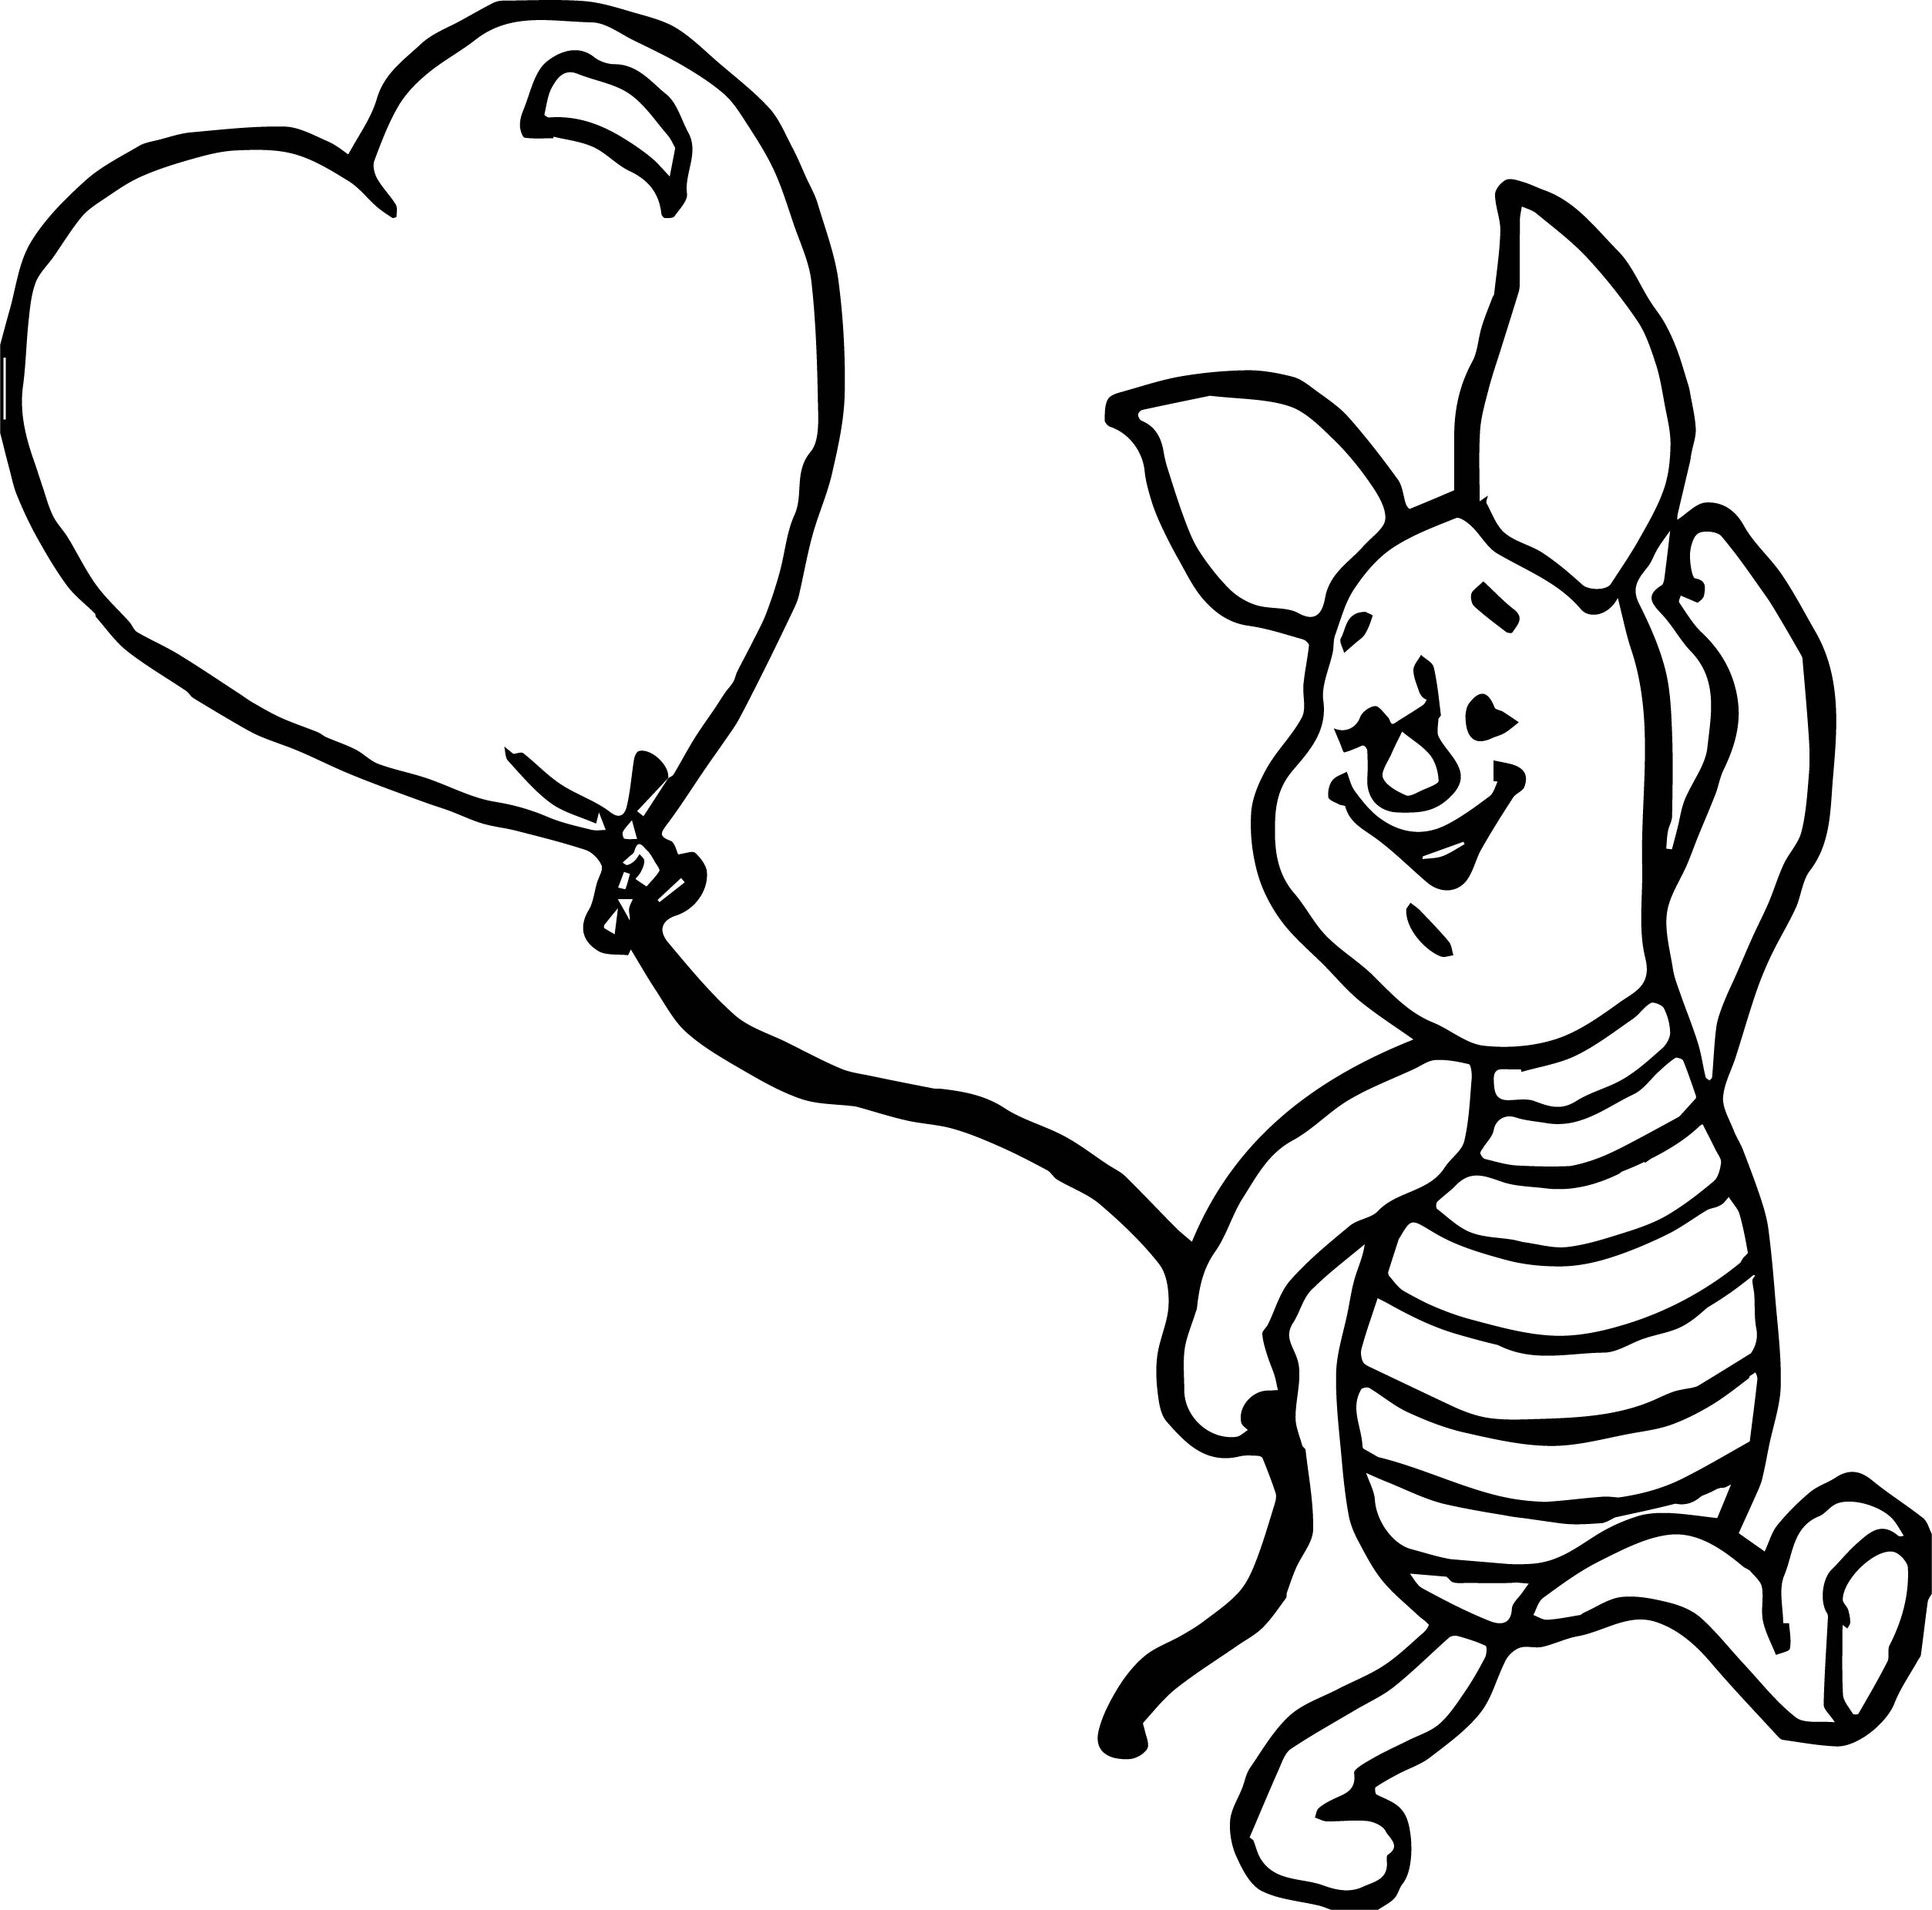 Baby piglet balloon coloring page for Piglet coloring pages